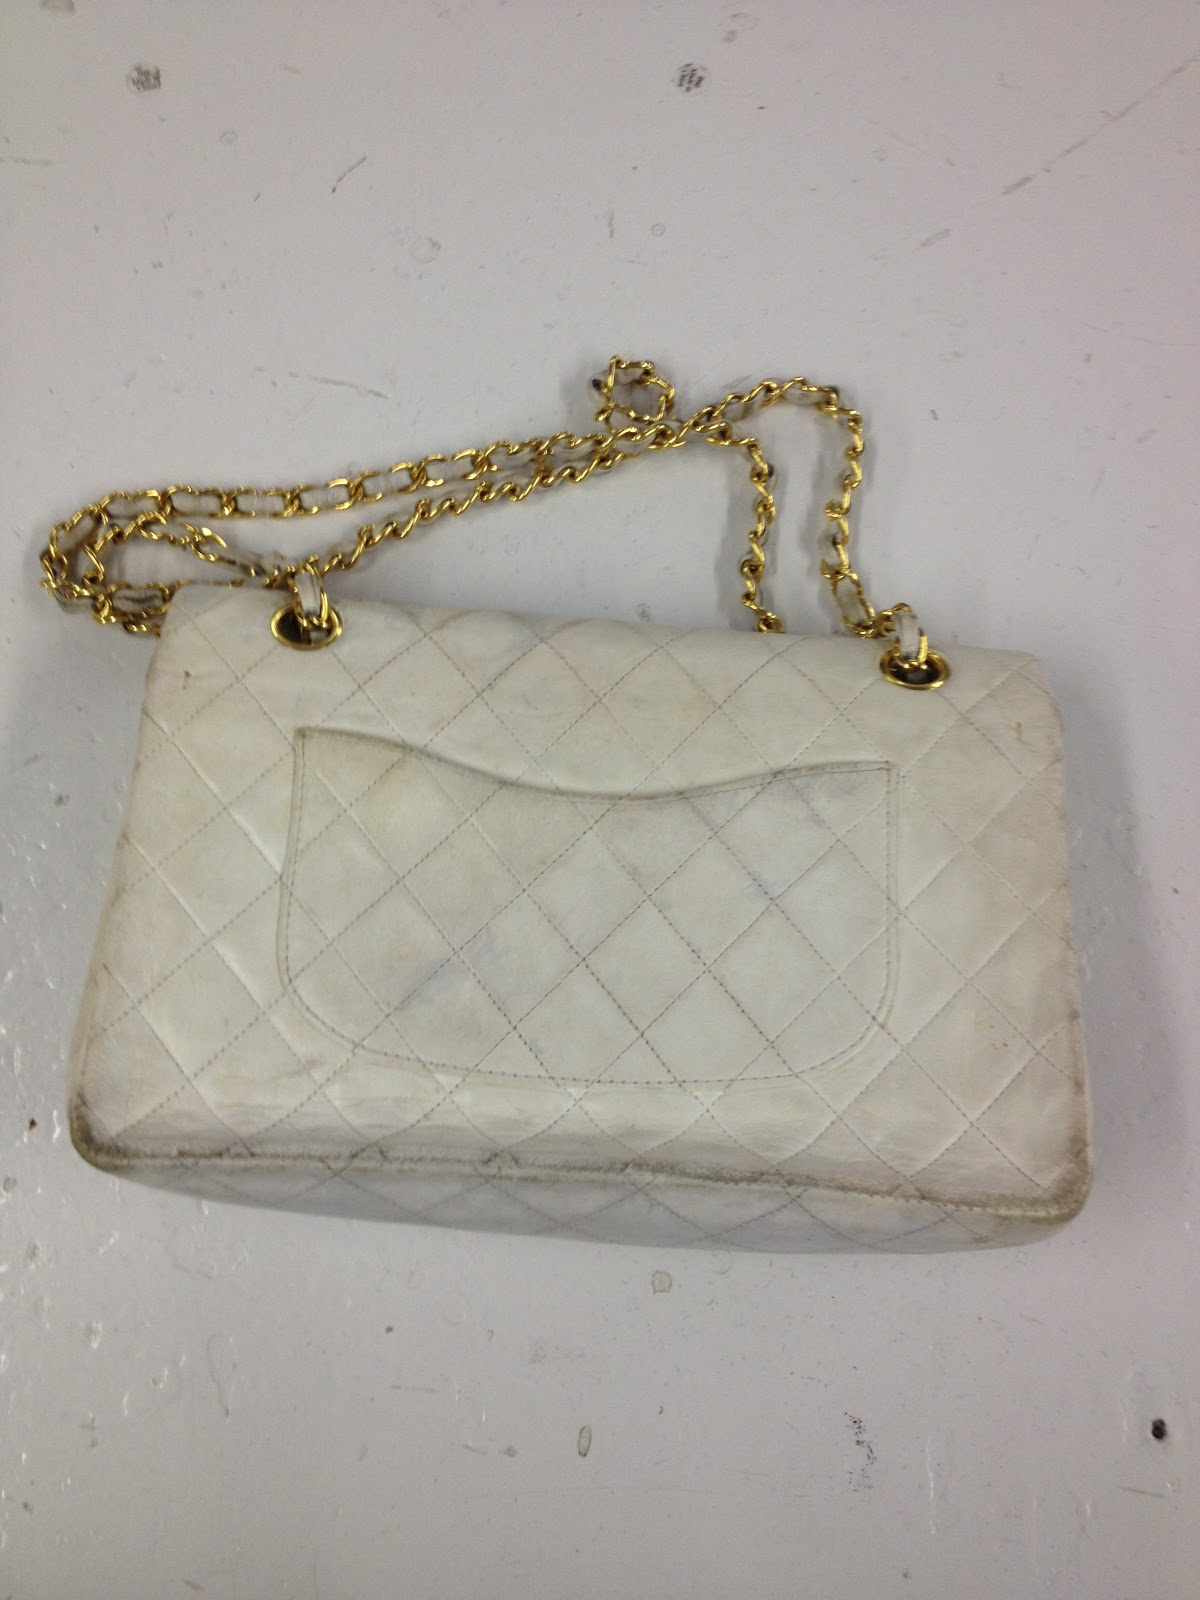 64f18edb6235 She chose to go with the color black so the purse wouldn t show stains as  bad.